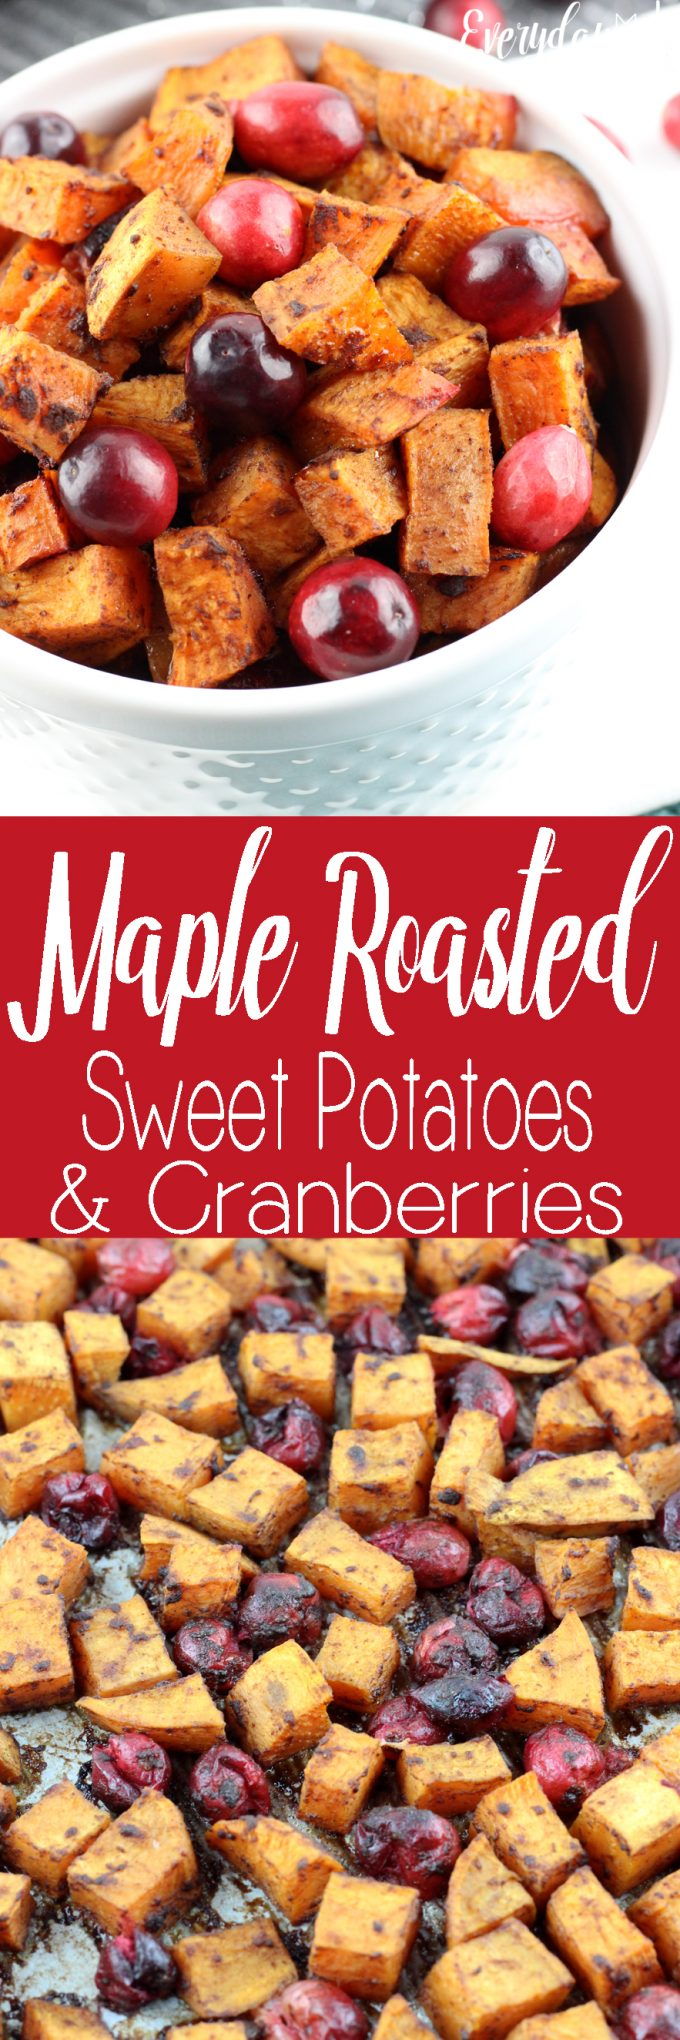 What could make sweet potatoes even better? Maple, cinnamon, and cranberries! This Maple Roasted Sweet Potatoes and Cranberries is the perfect side any day of the week. | EverydayMadeFresh.com